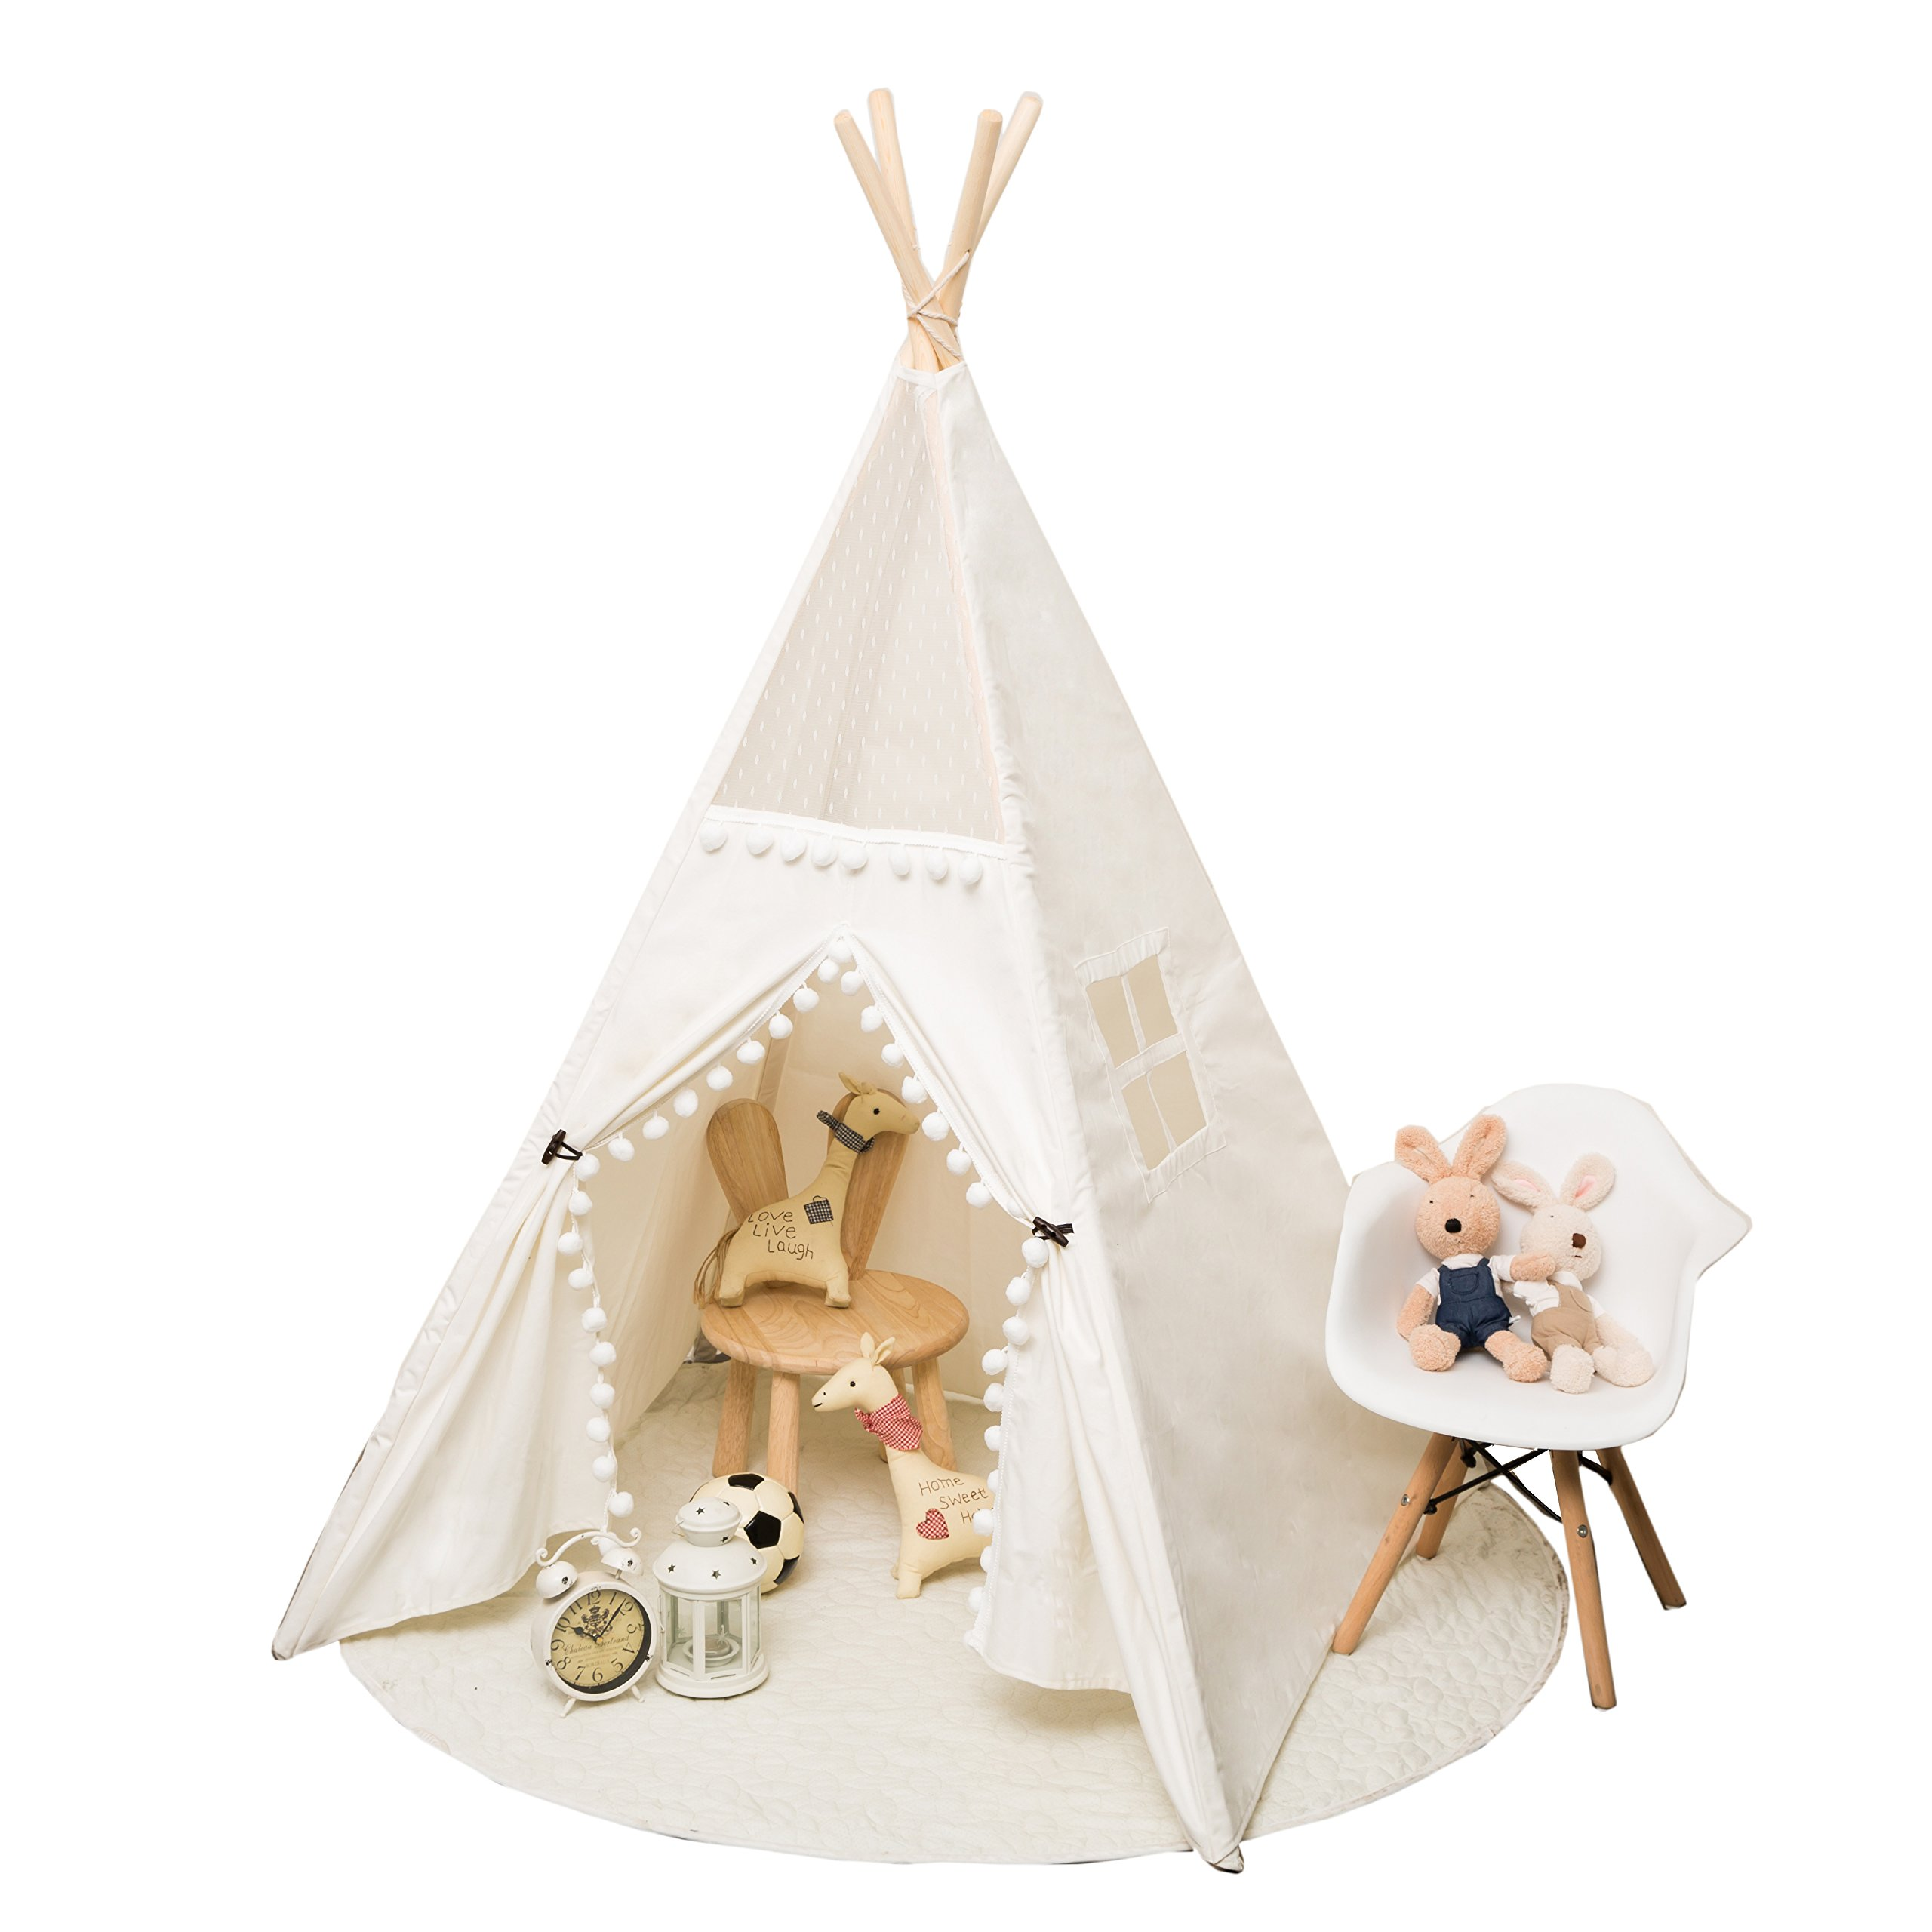 RONG FA Top Lace Style Children Playhouse Indian Teepee Tent Kids Play Room